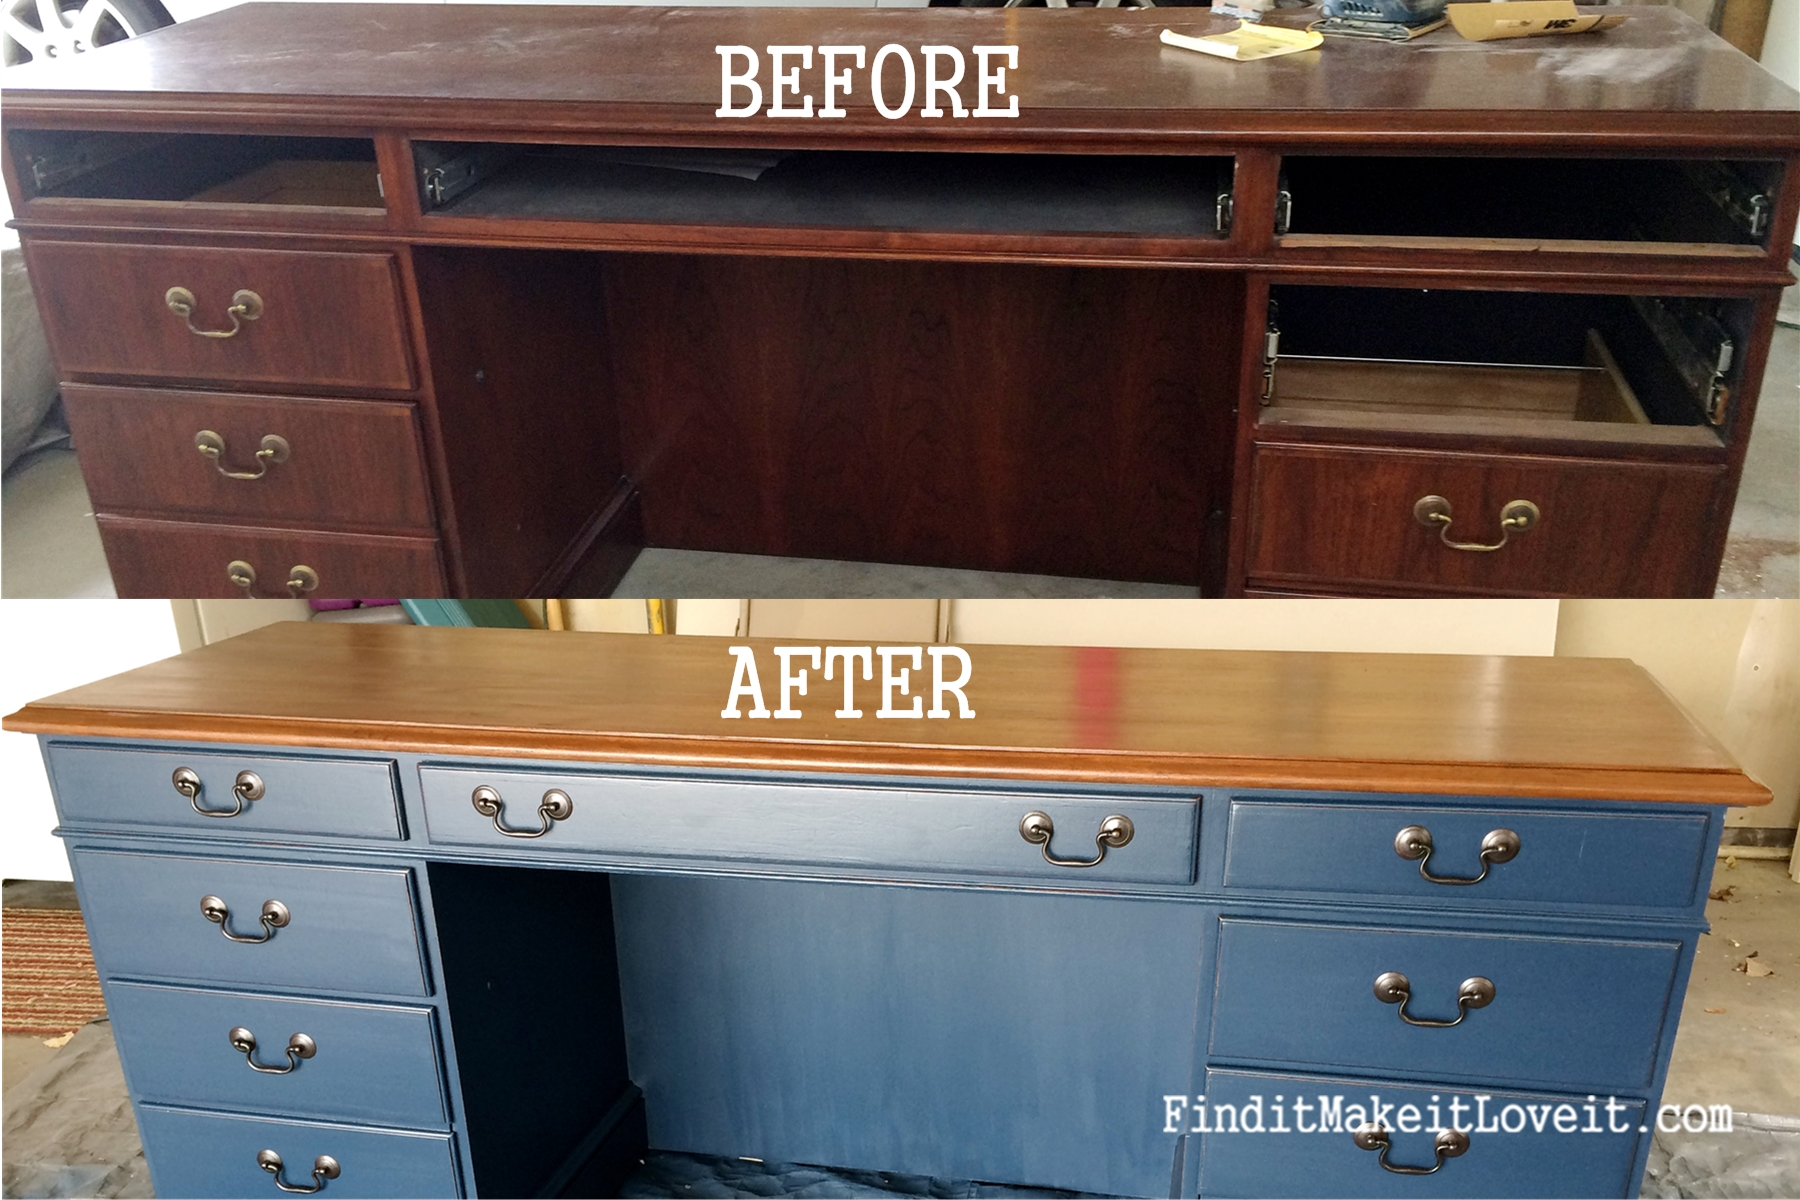 cupboard steel kitchen door oak after with refinishing countertop plus wood furniture handle before ideas drawer cabinets darker and